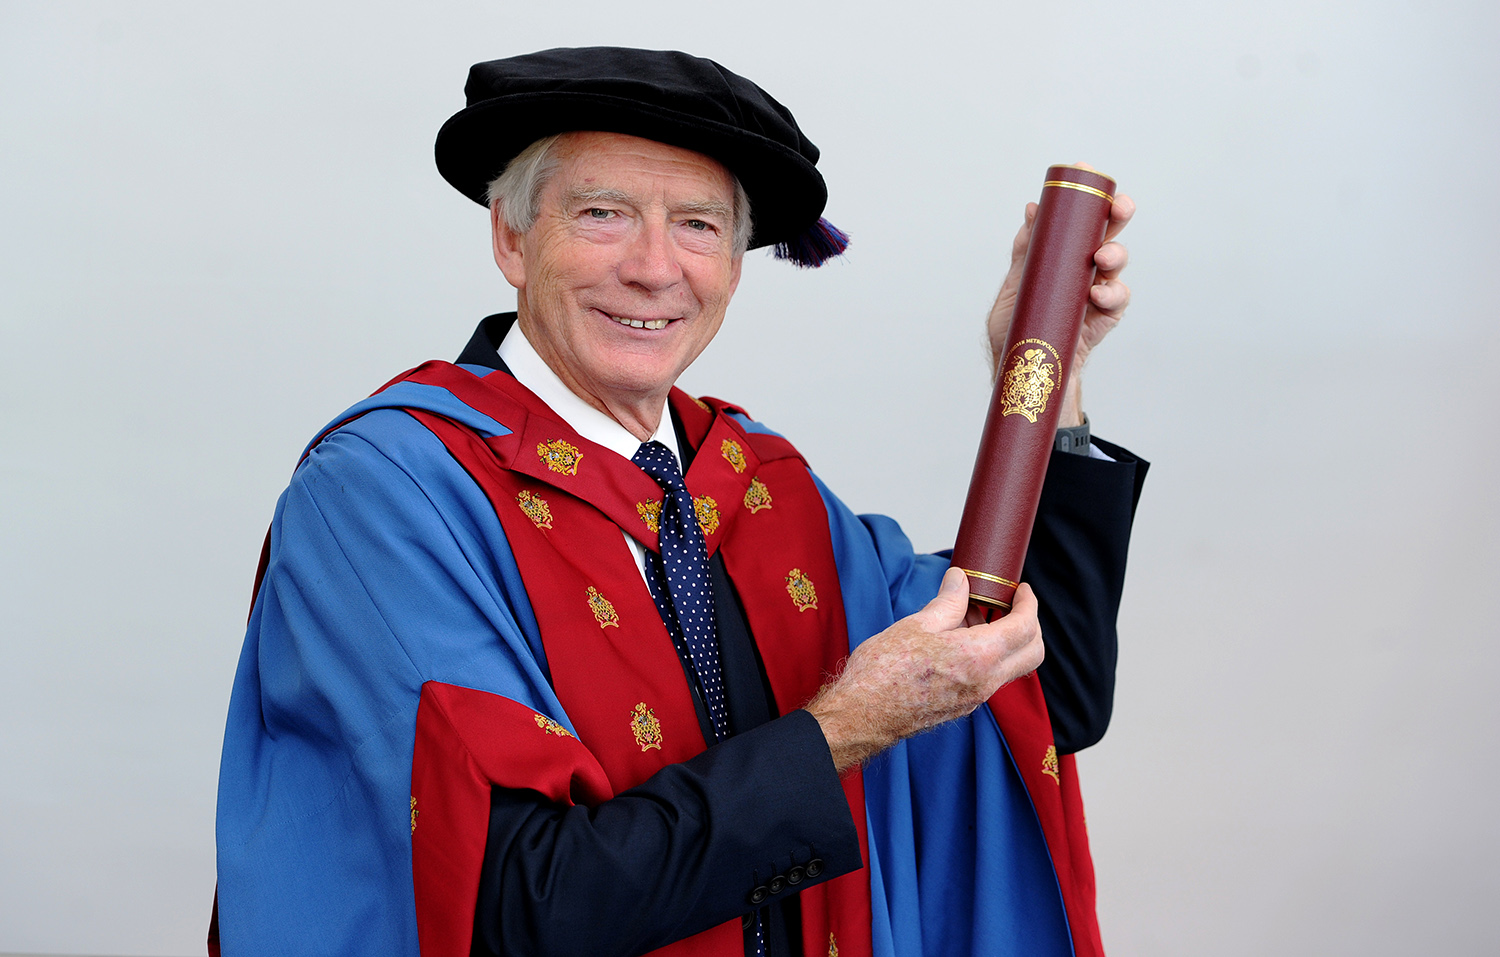 Professor Sir David Melville was awarded a Doctor of Science honorary degree